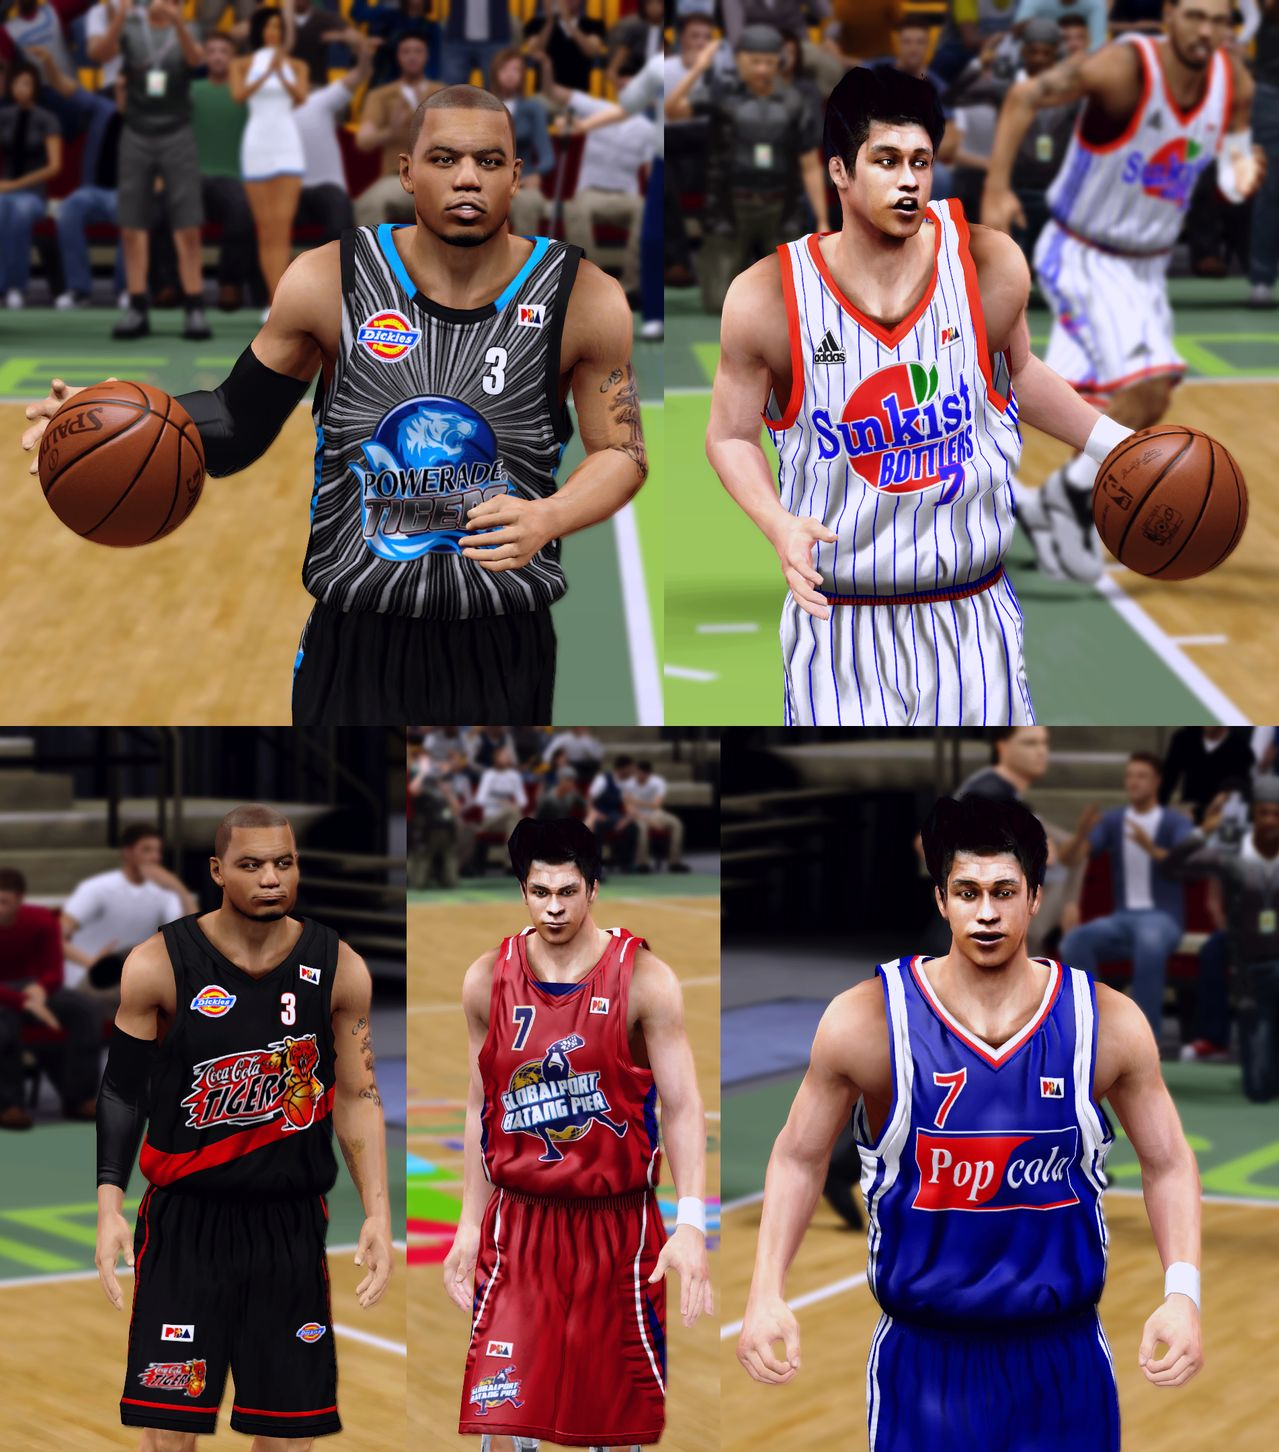 MAJOR BASKETBALL LEAGUE 2K14 - Version 3.1 RELEASED!!! Image